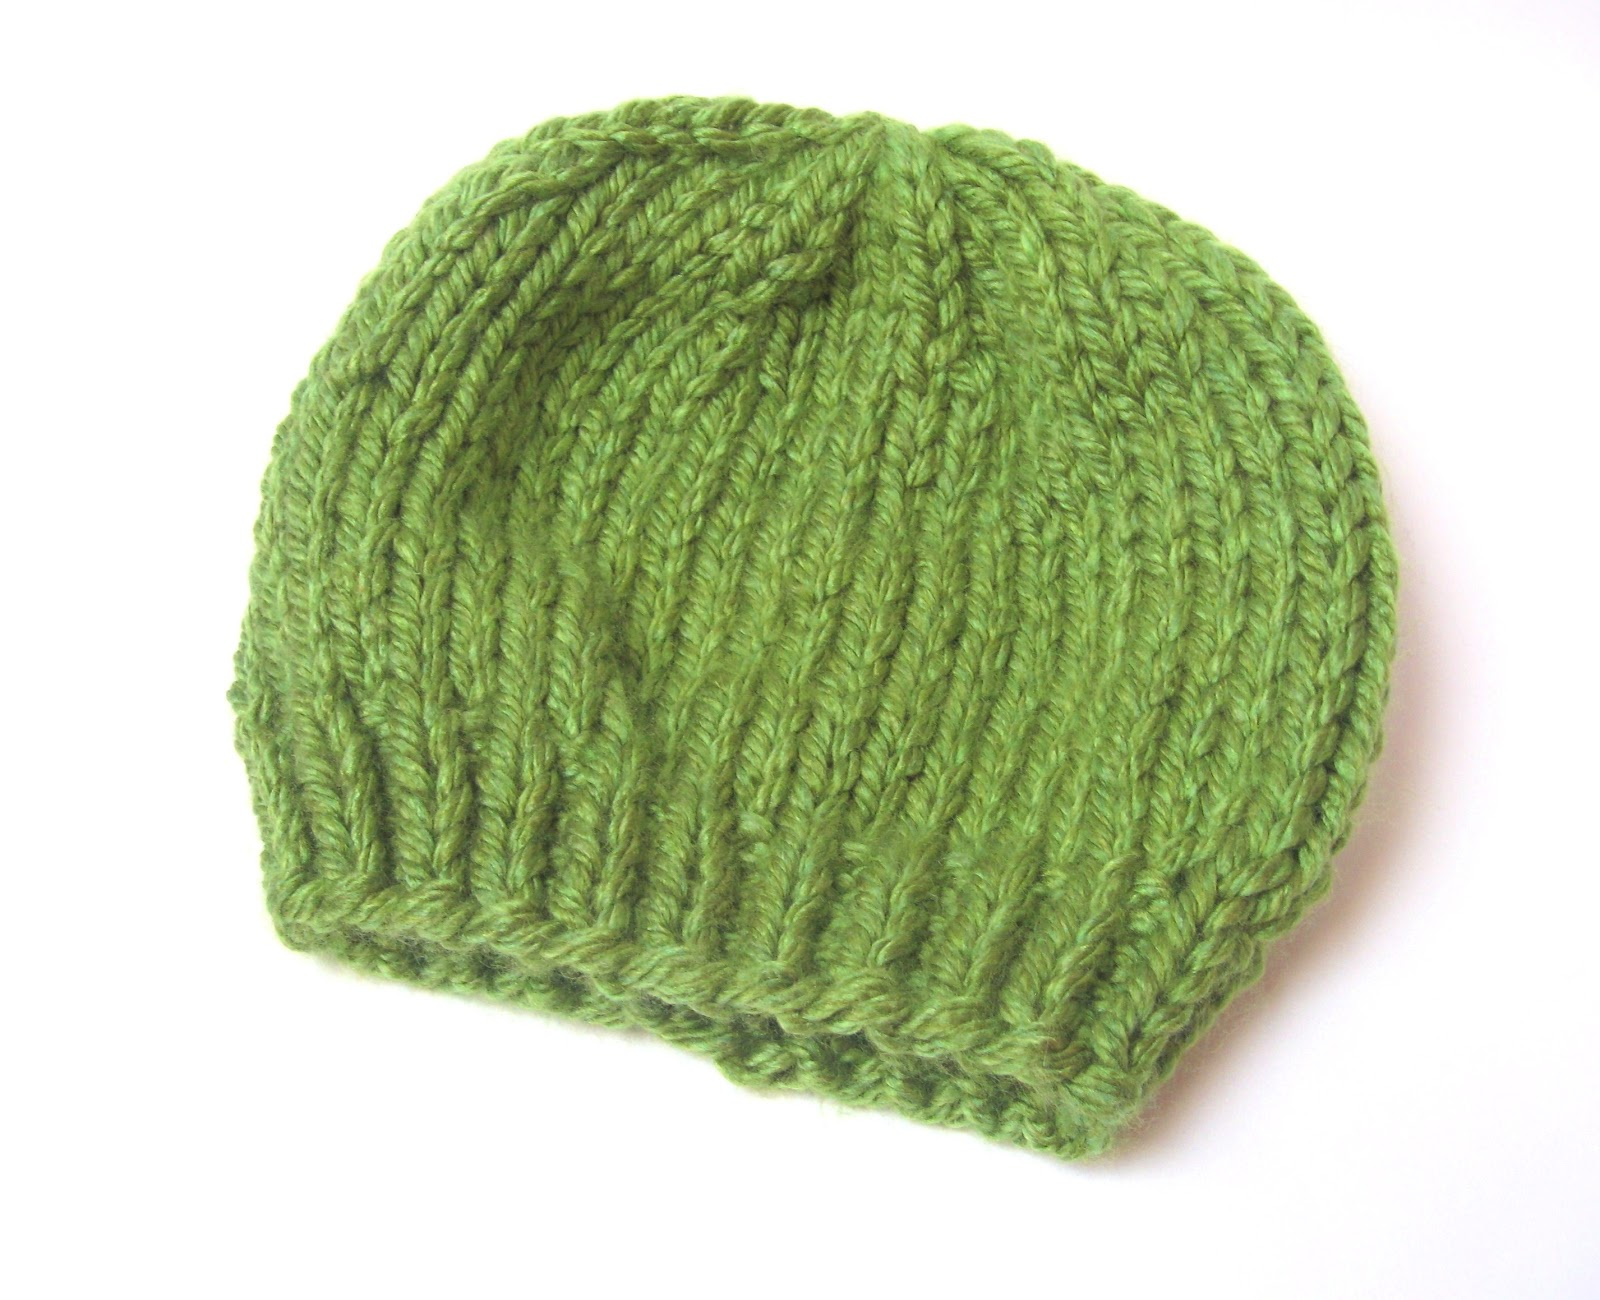 Free Knitting Pattern Hat With Bulky Yarn : megan E sass handknits: Free Knitting Pattern: Easy Chunky ...